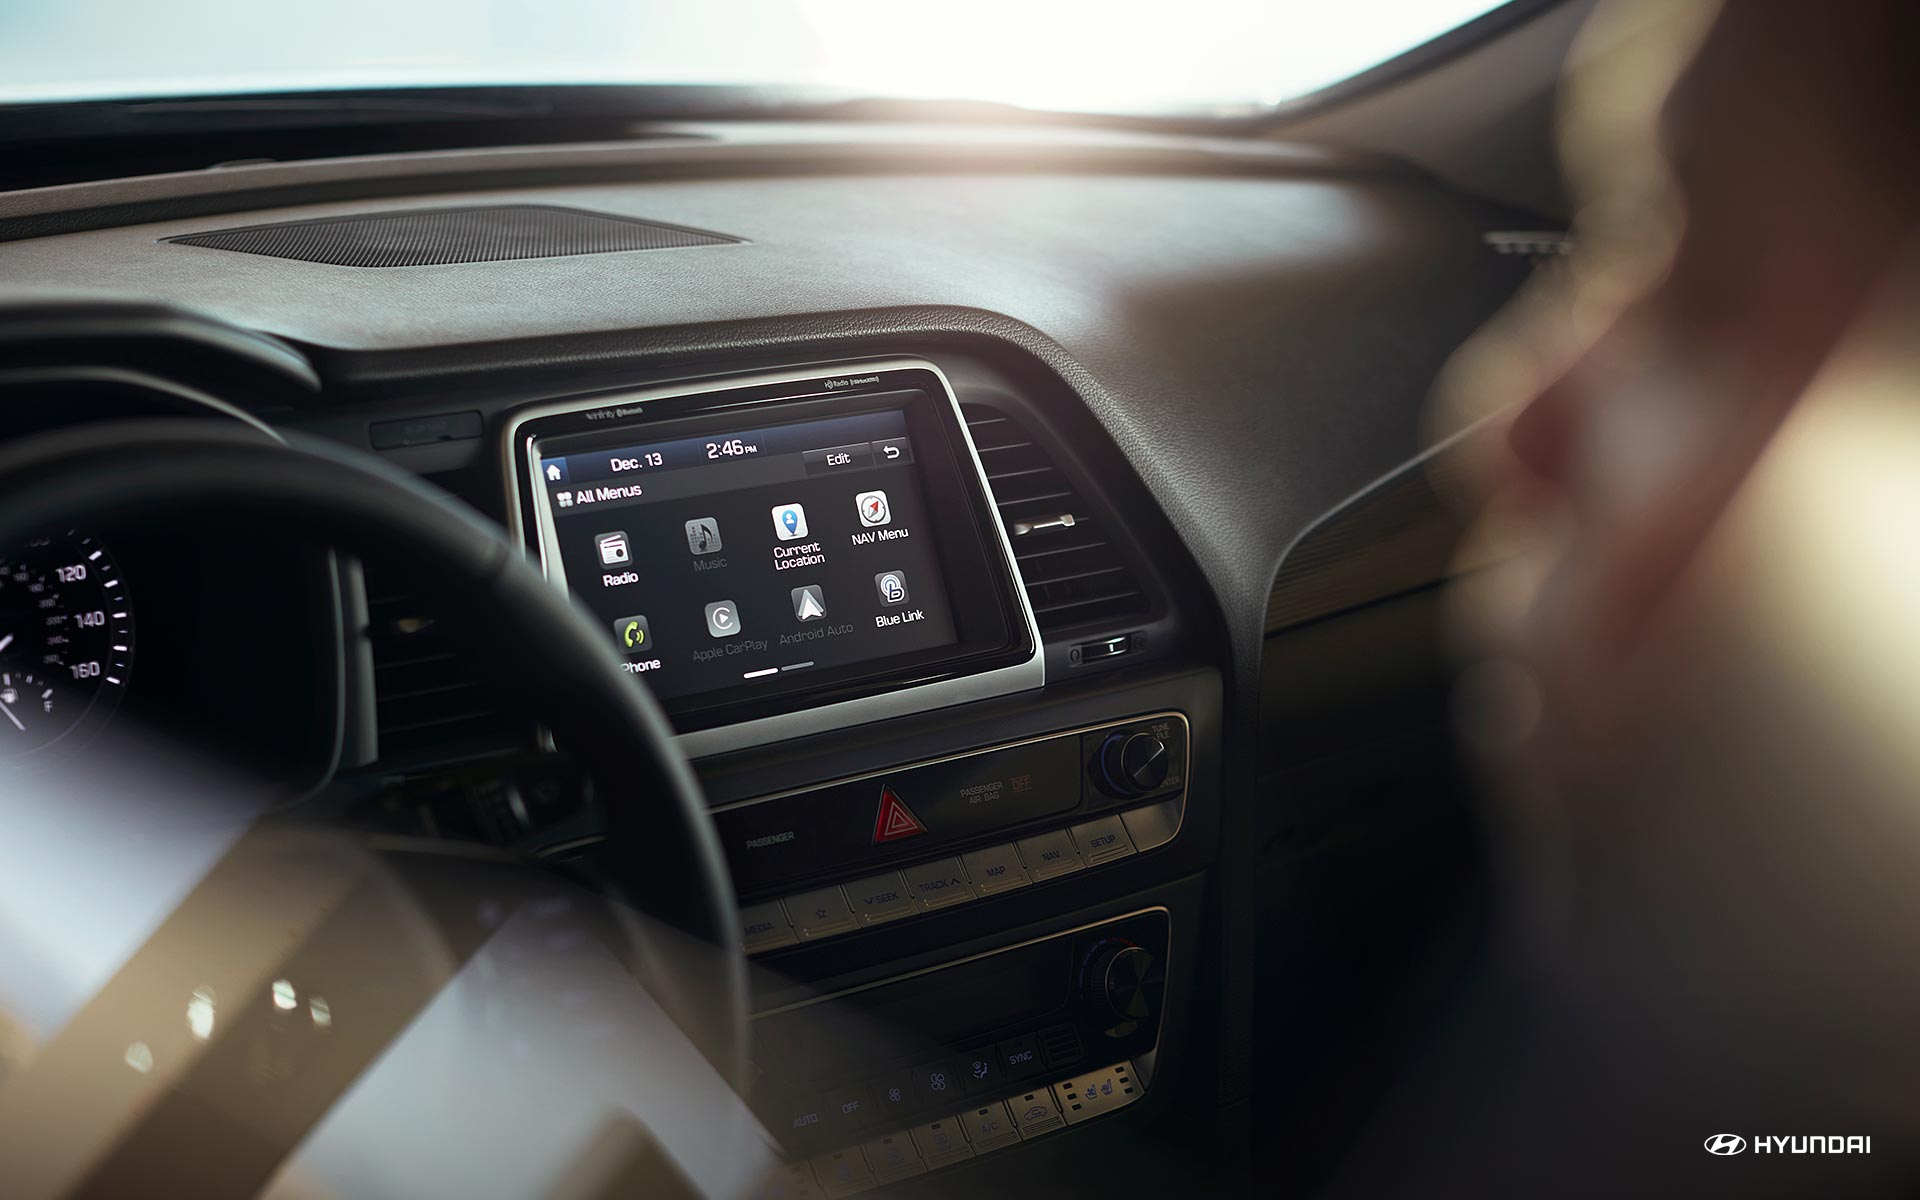 Touchscreen Display in the 2019 Hyundai Sonata